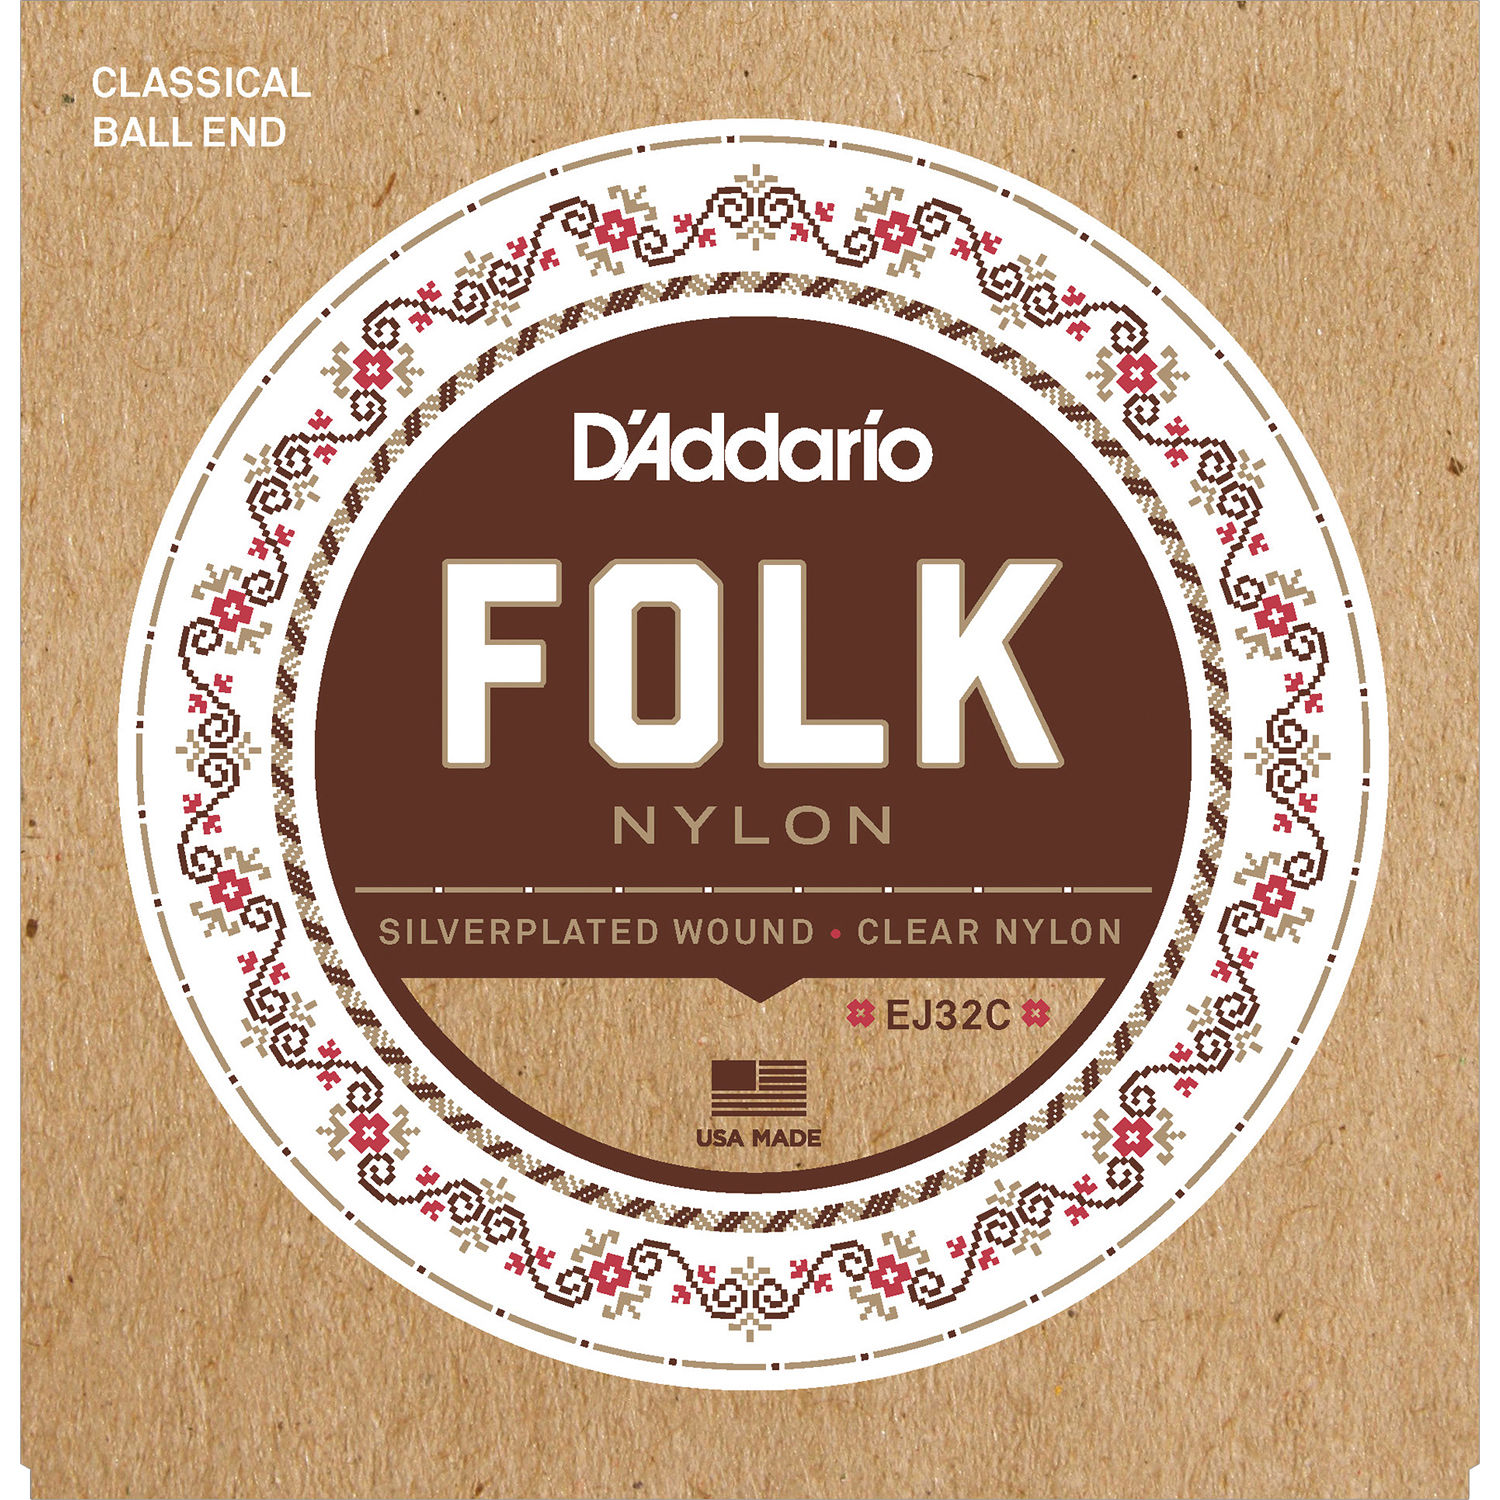 D Addario Nylon Classical Guitar Strings : d 39 addario ej32c folk nylon classical guitar strings ej32c b h ~ Russianpoet.info Haus und Dekorationen